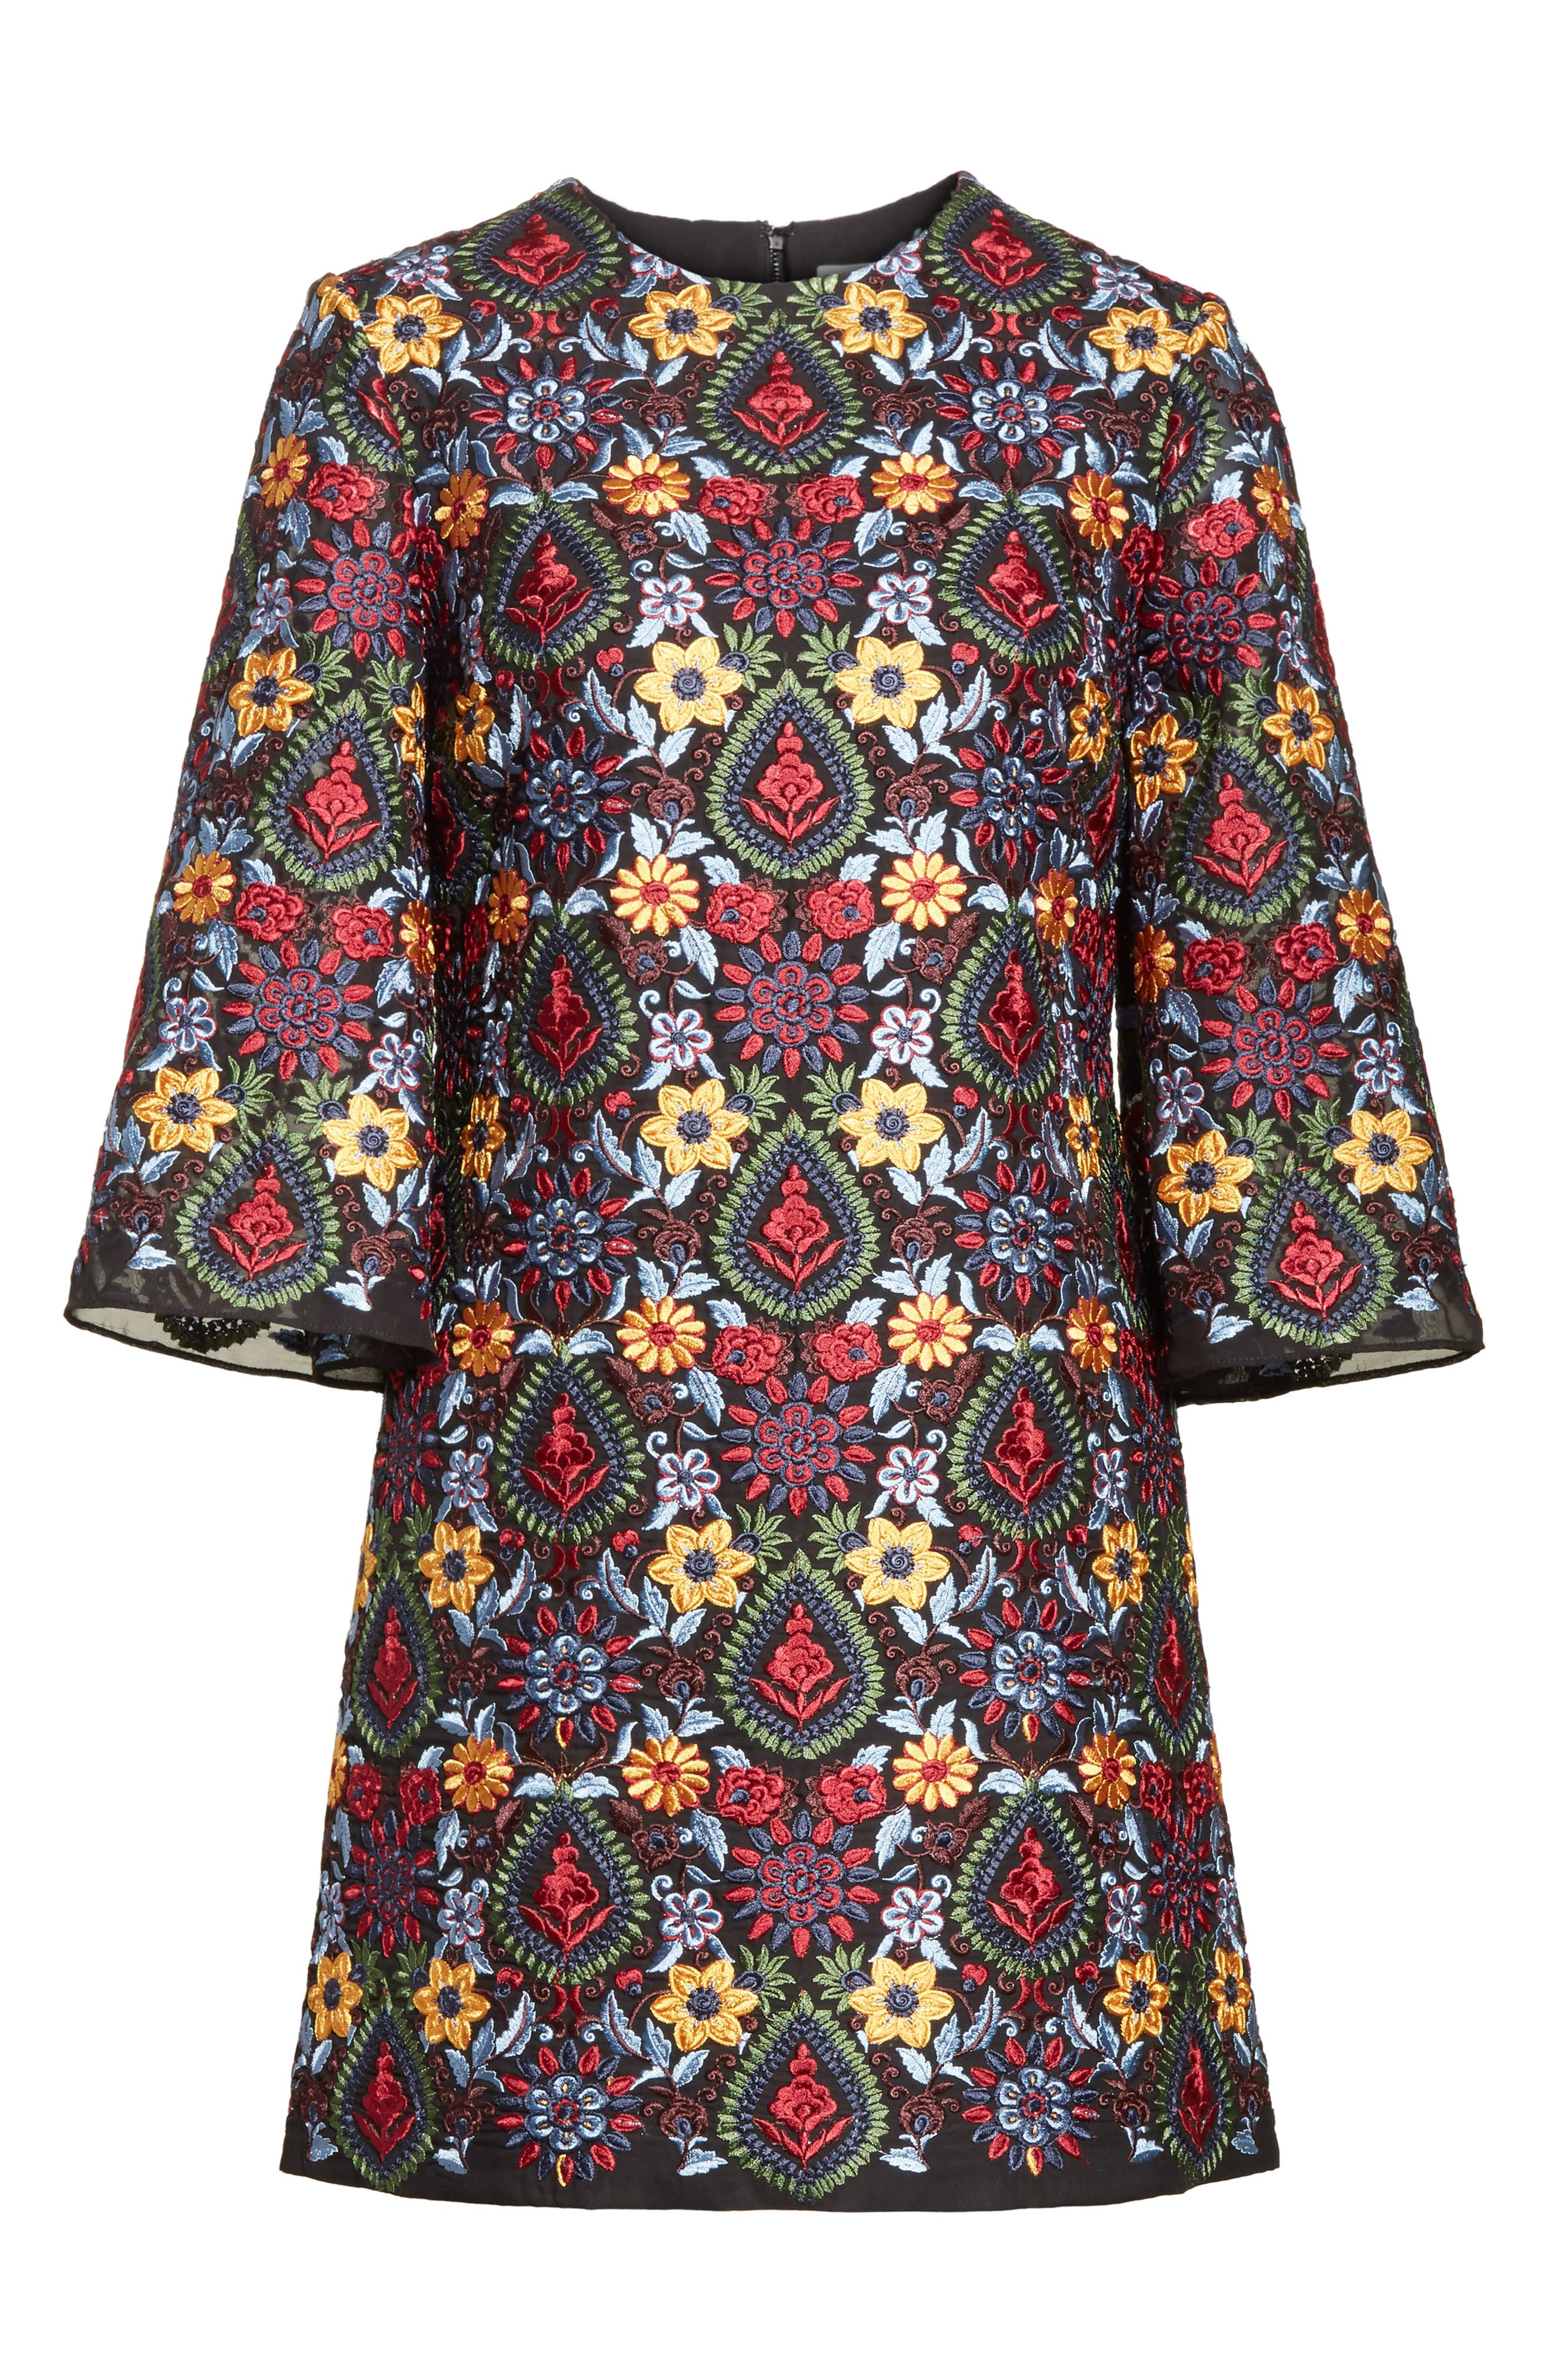 Coley Embroidered Bell Sleeve Dress,                             Alternate thumbnail 6, color,                             Black Multi